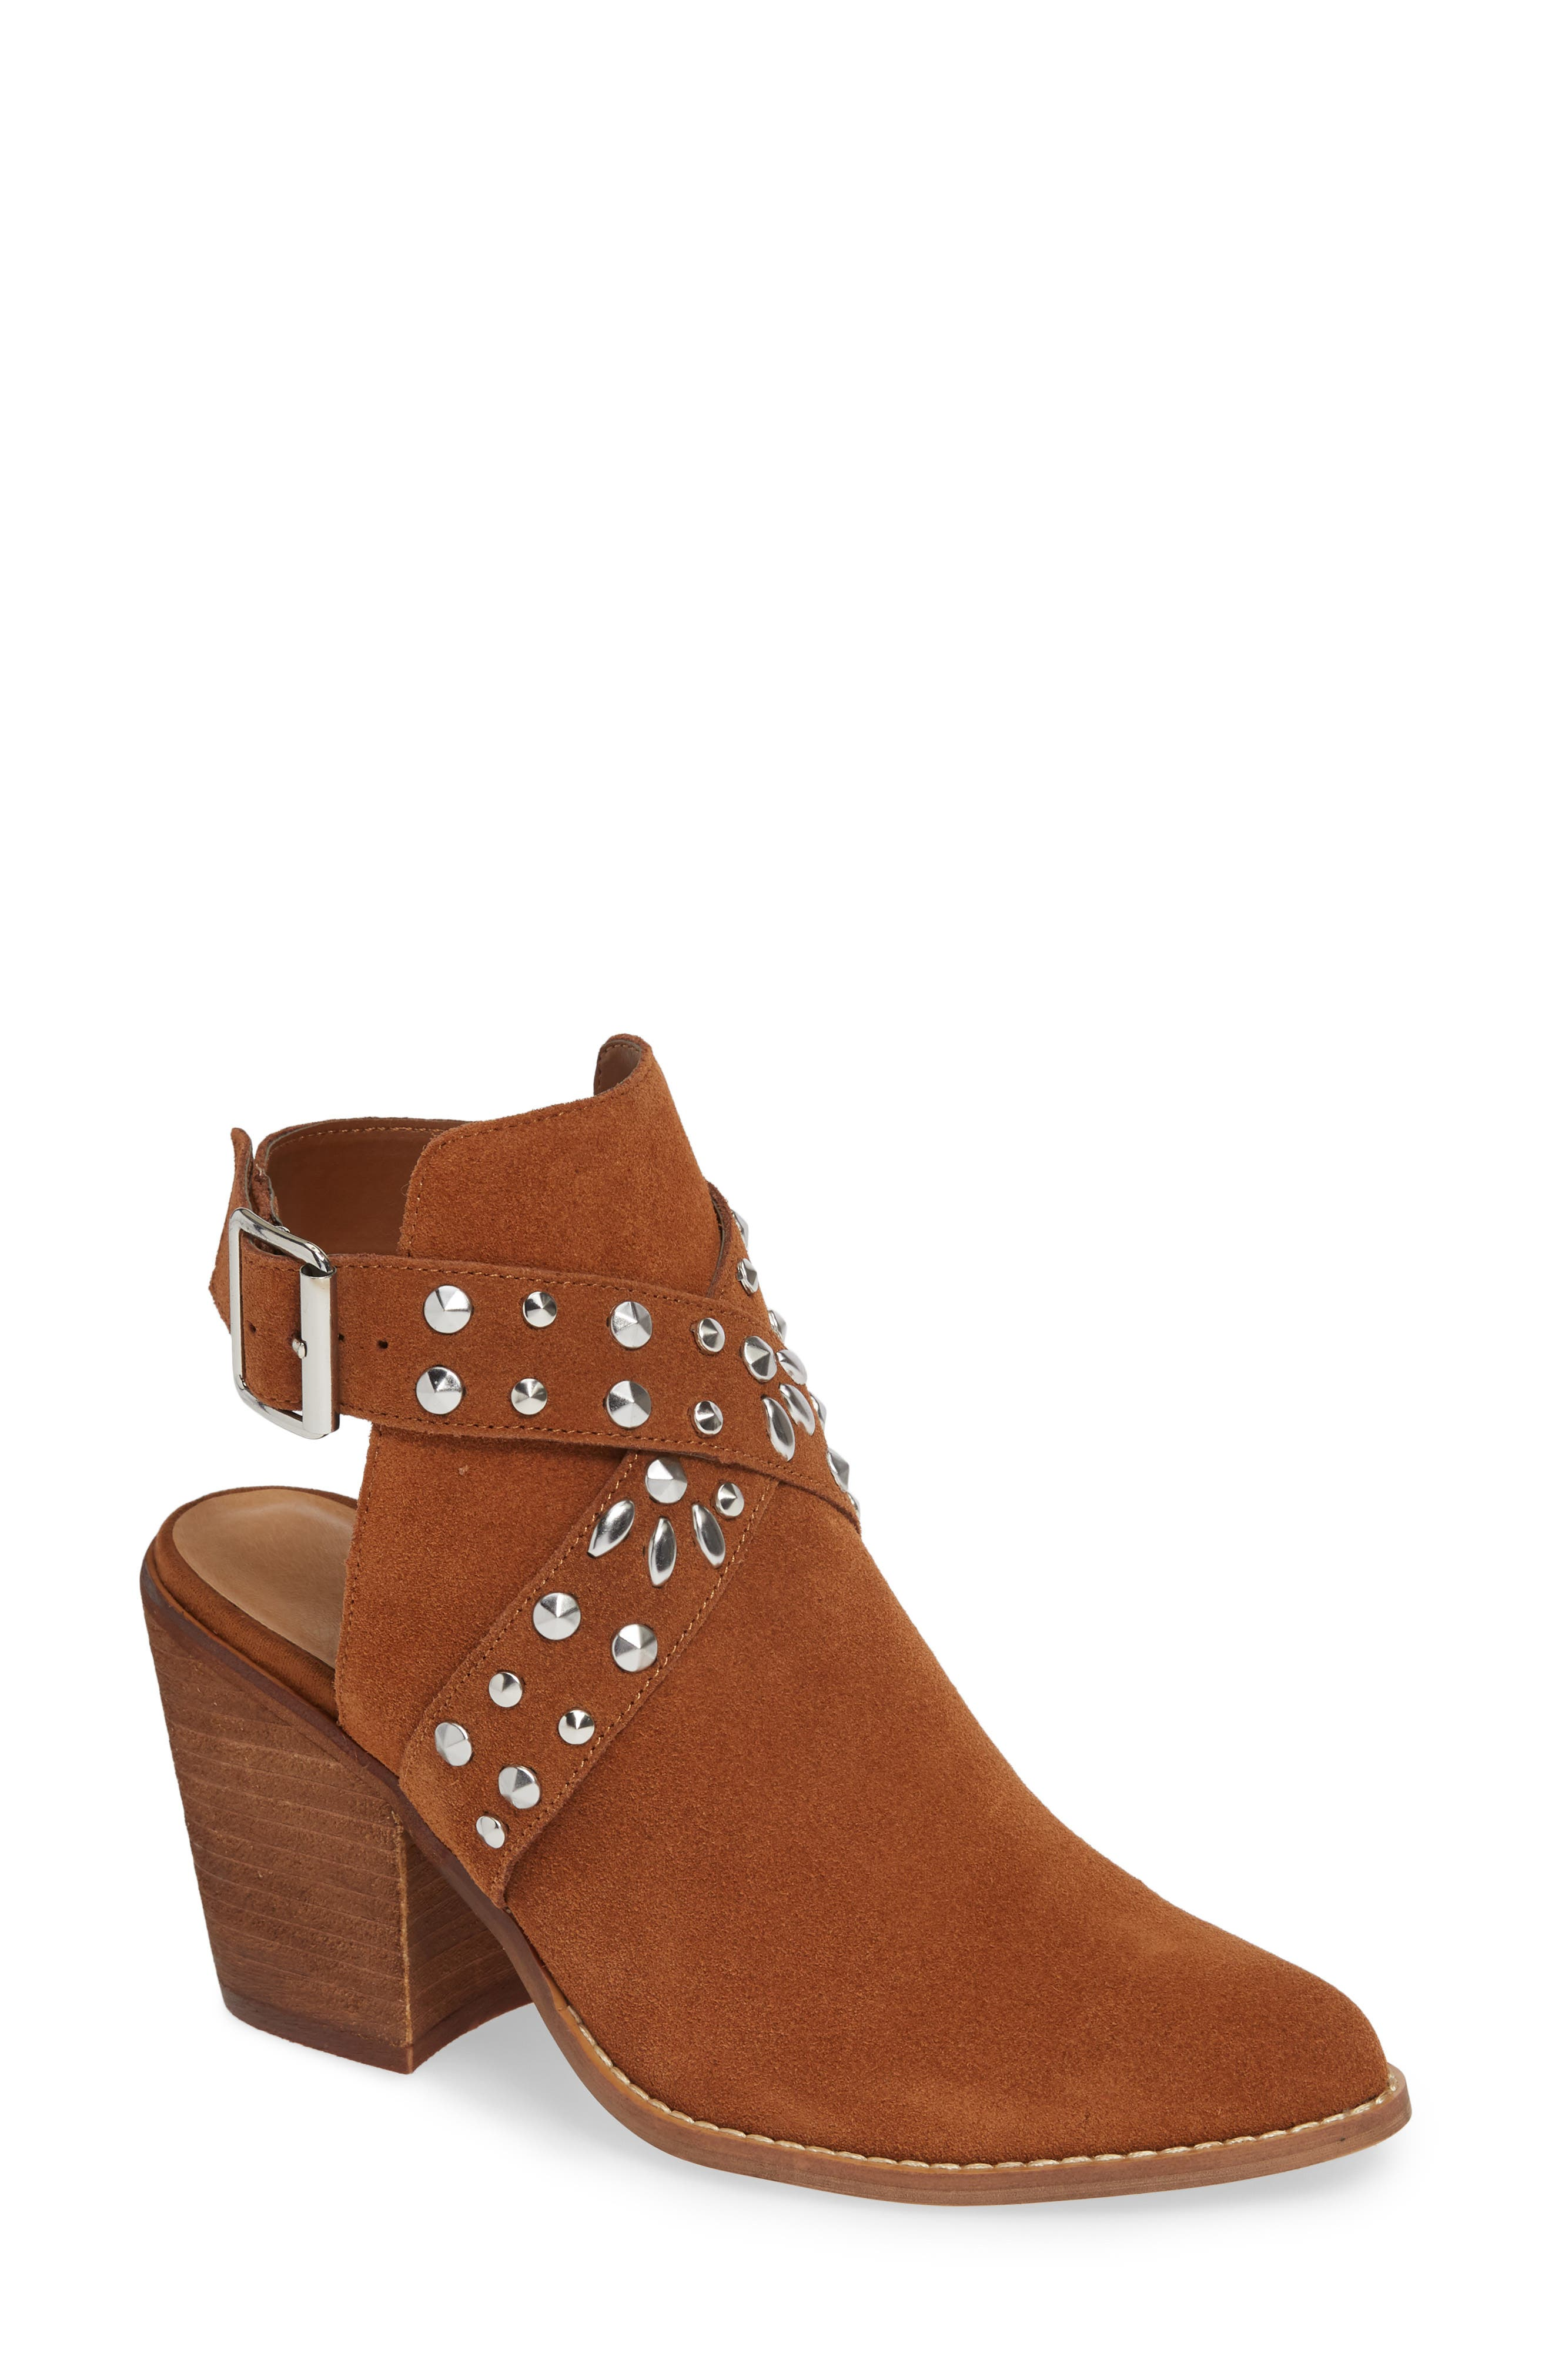 Chinese Laundry Small Town Studded Bootie, Brown